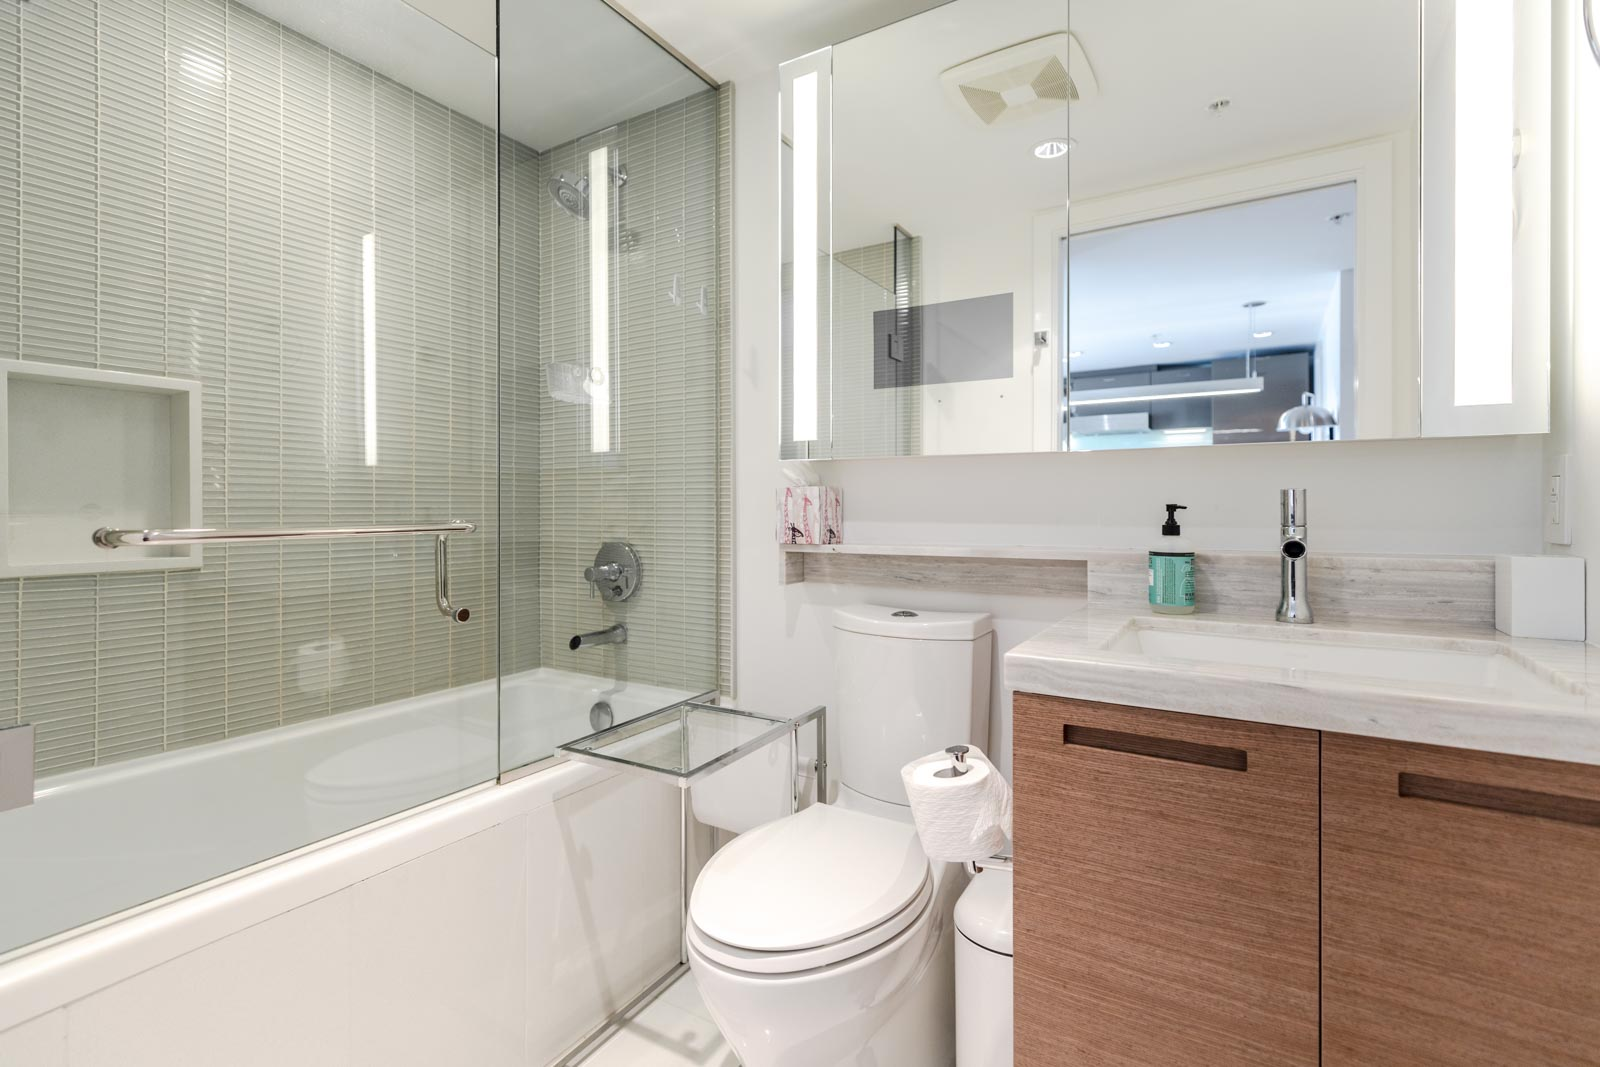 Bathroom at Downtown Vancouver condo rental managed by Birds Nest Properties.